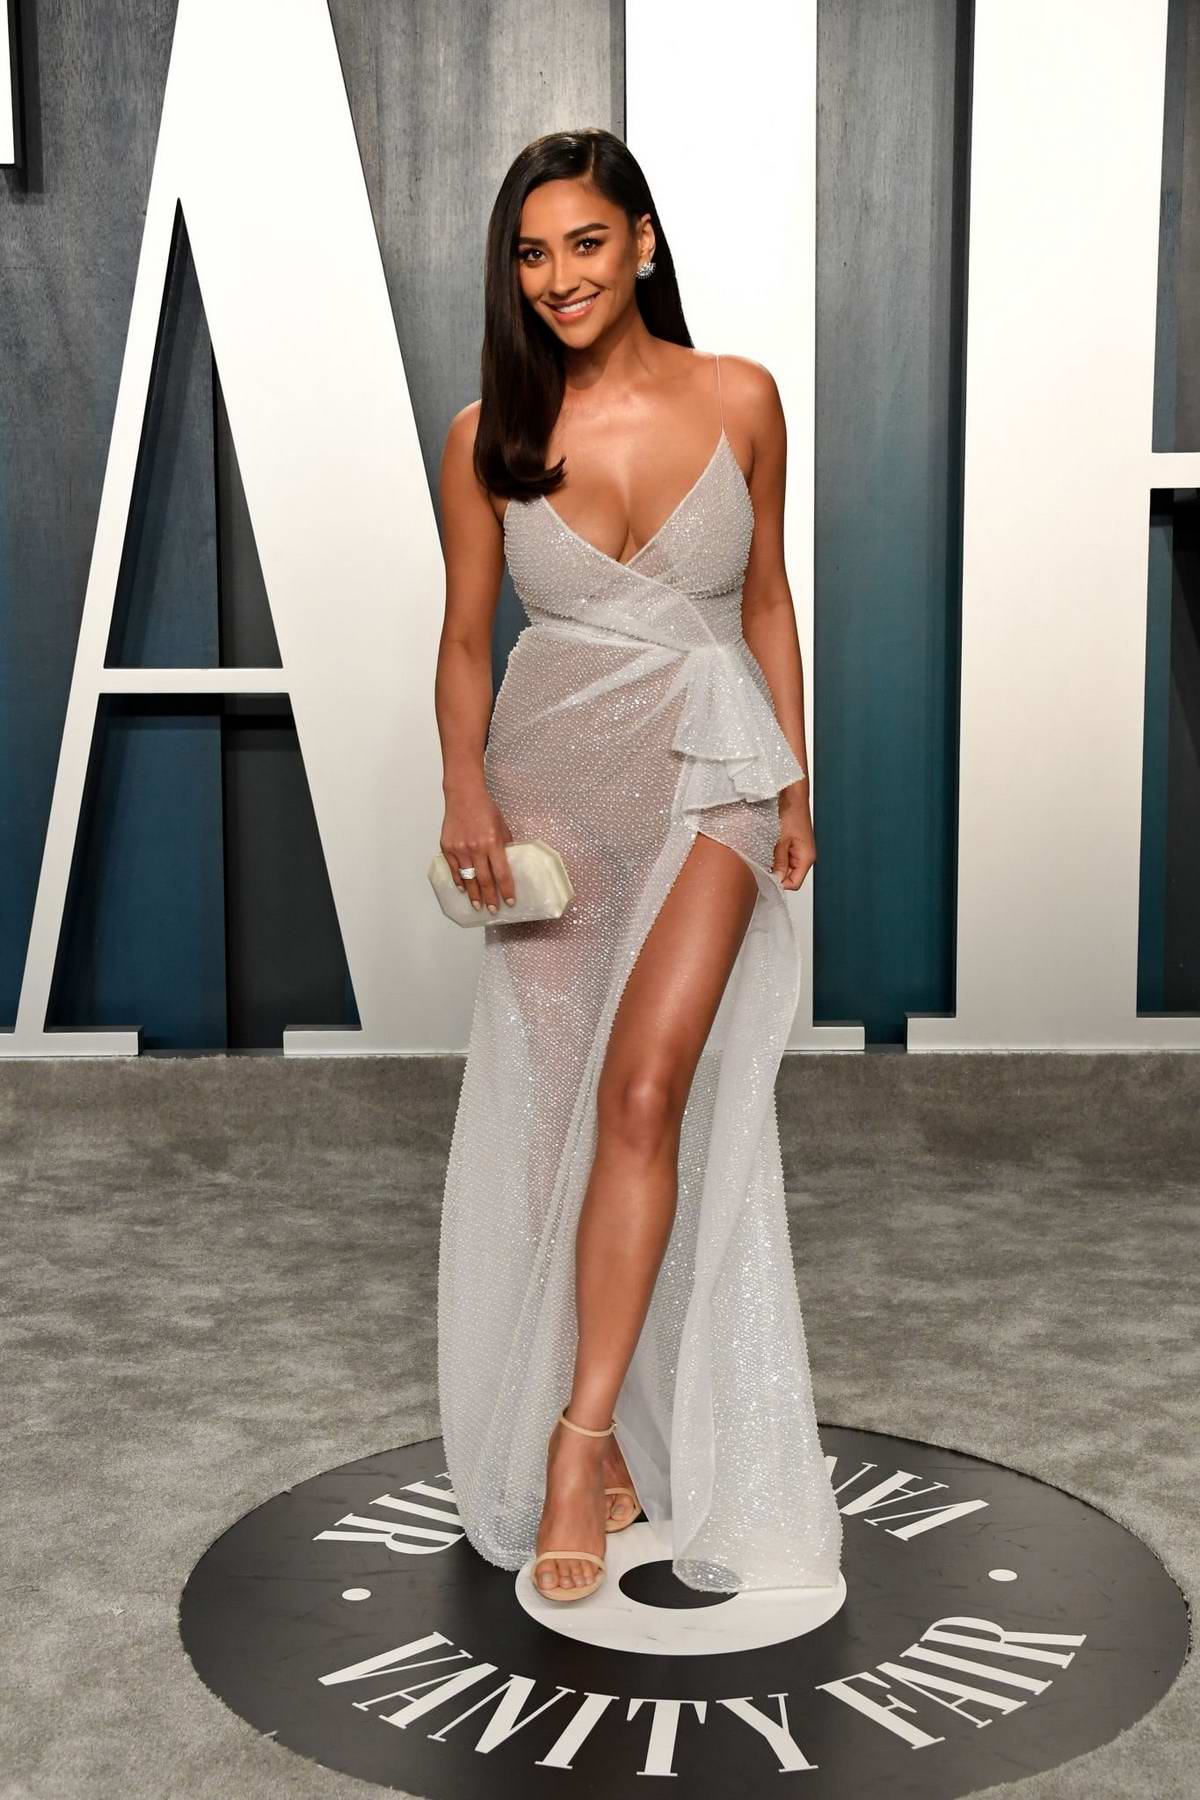 Shay Mitchell attends the 2020 Vanity Fair Oscar Party at Wallis Annenberg Center for the Performing Arts in Los Angeles